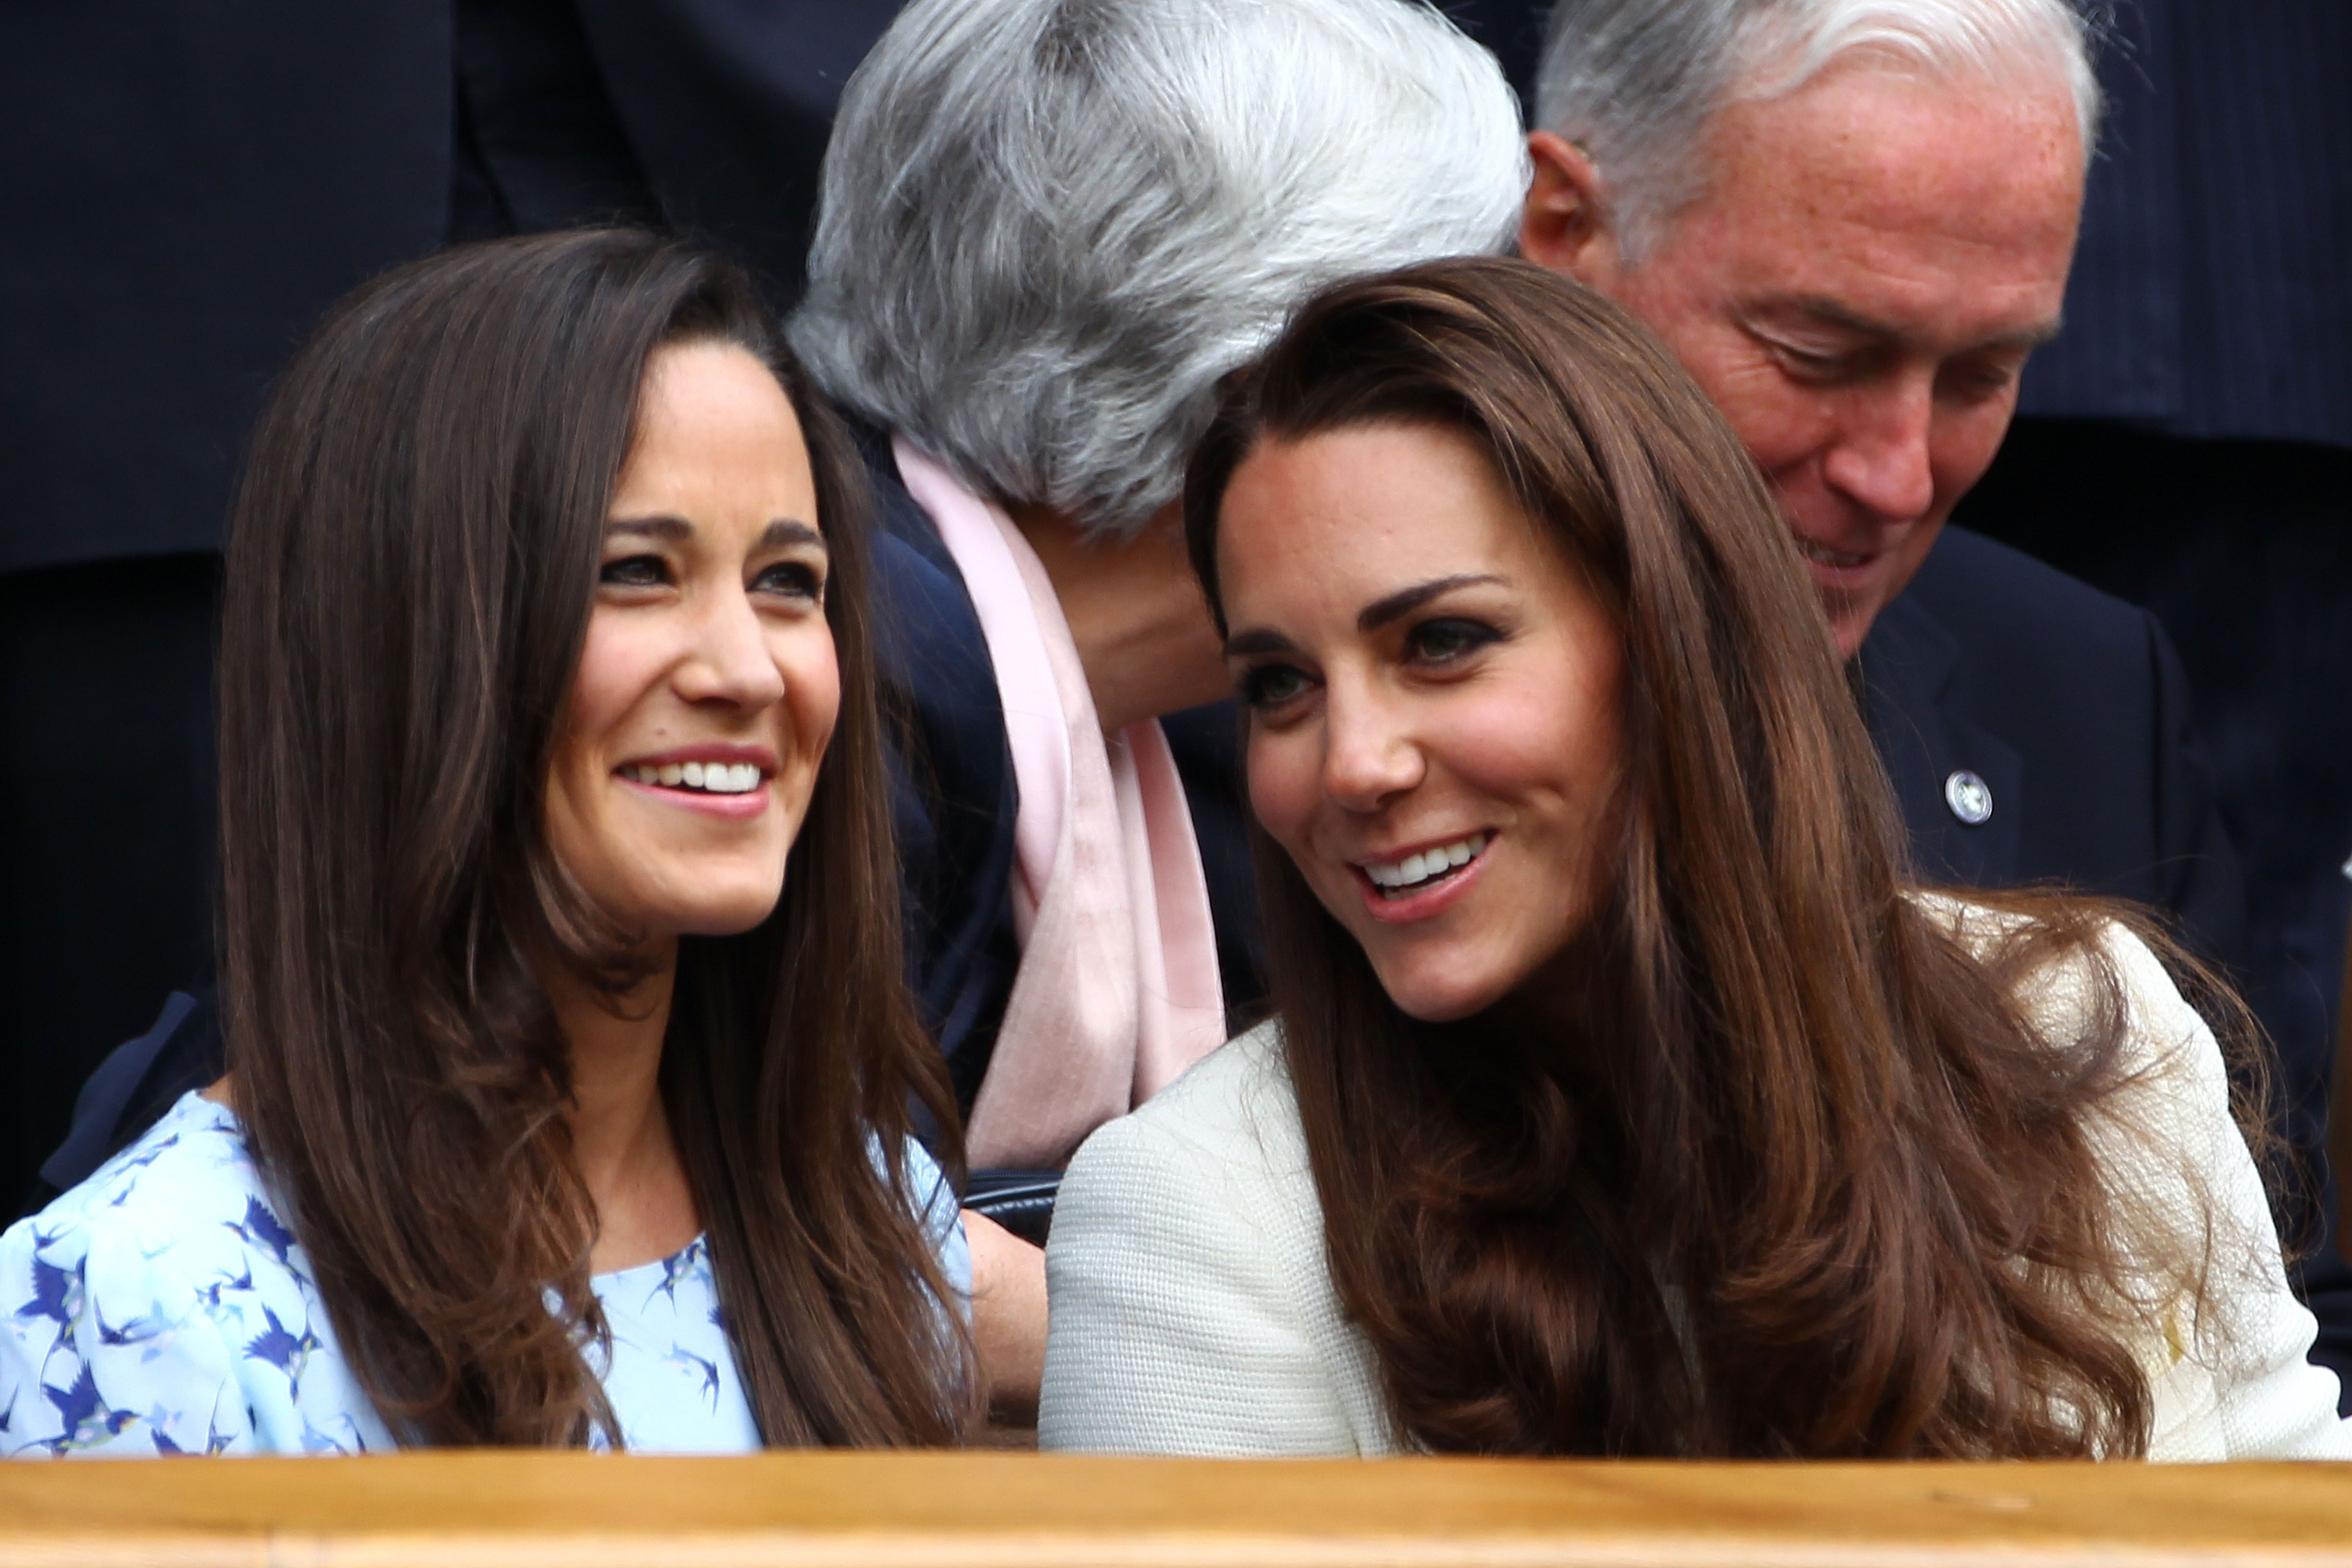 Kate et Pippa partageant une discussion complice. l Source : Getty Images